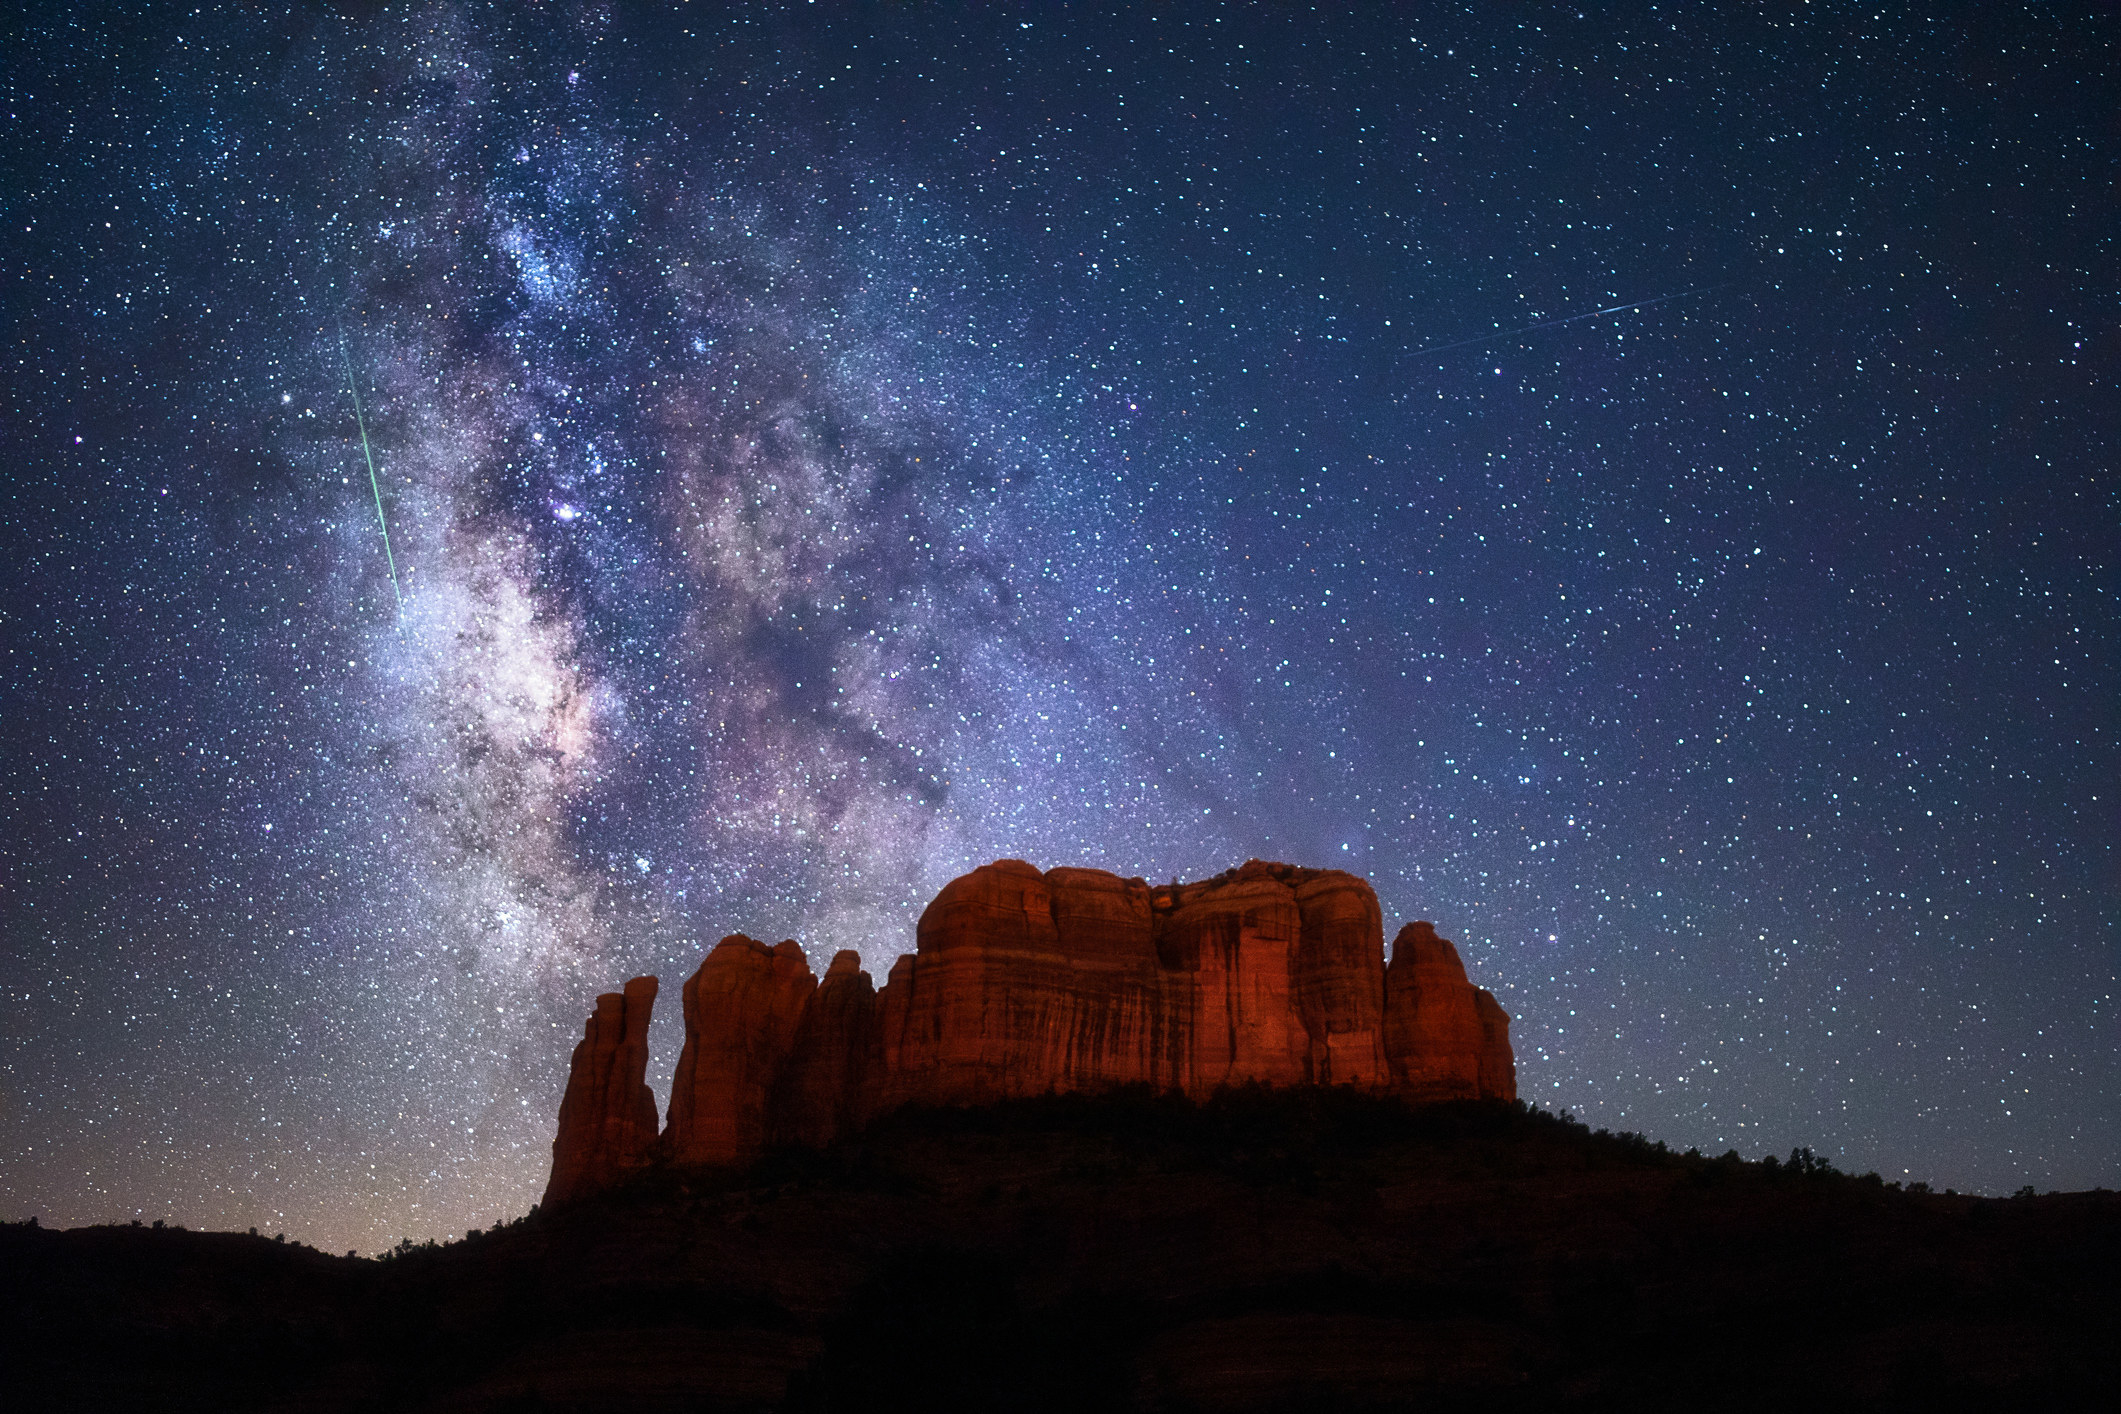 A bright green meteor streaks through the Milky Way and starry night sky above Cathedral Rock in Sedona, Arizona.